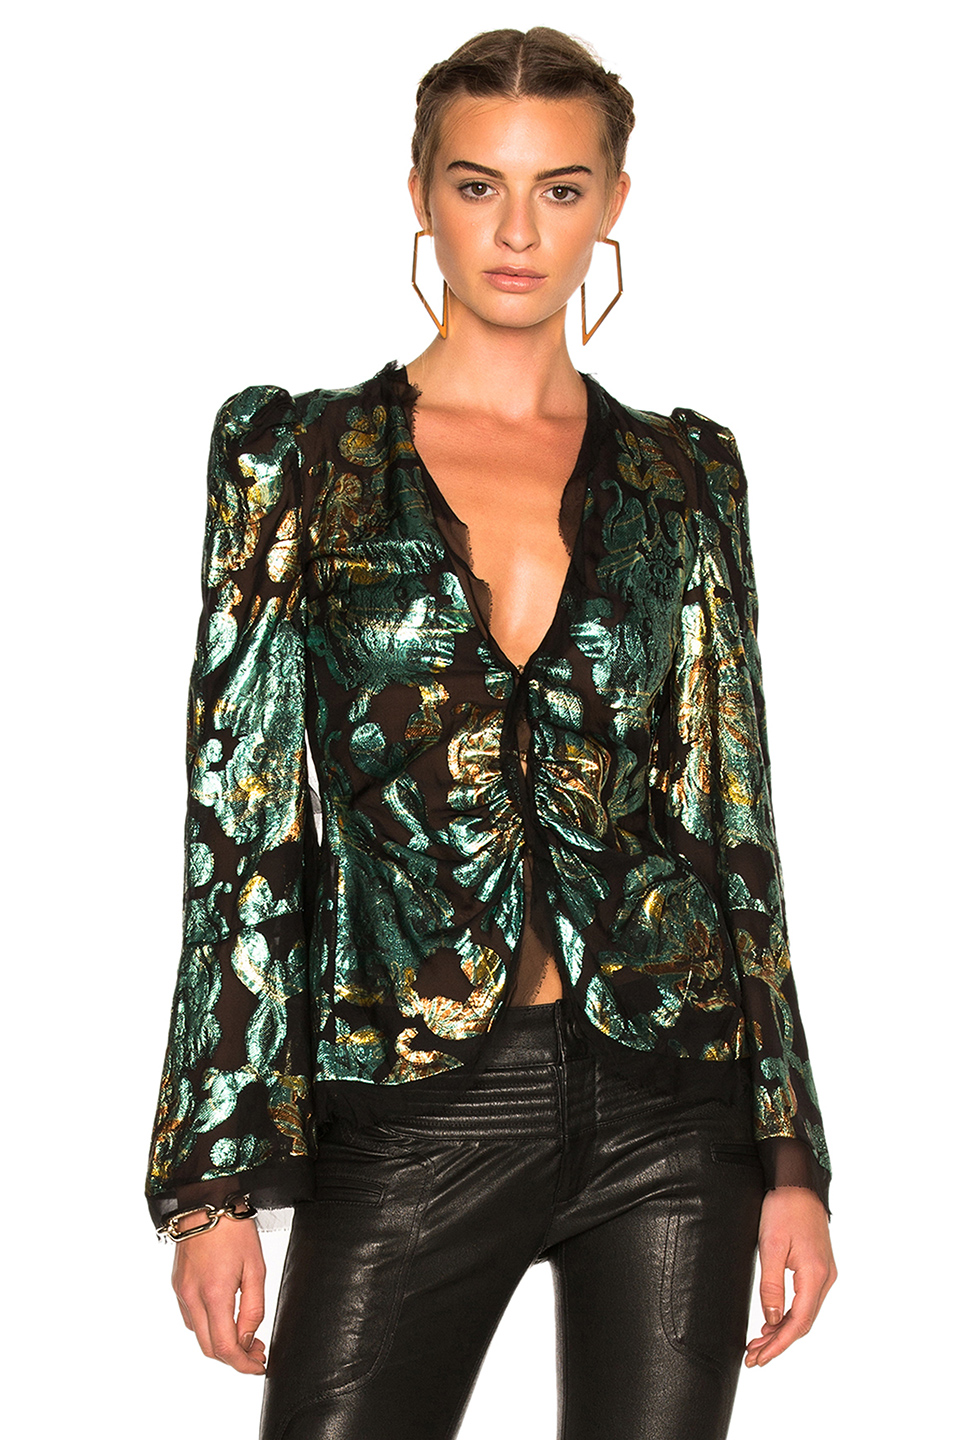 Roberto Cavalli Woven Blazer in Green,Abstract,Metallics